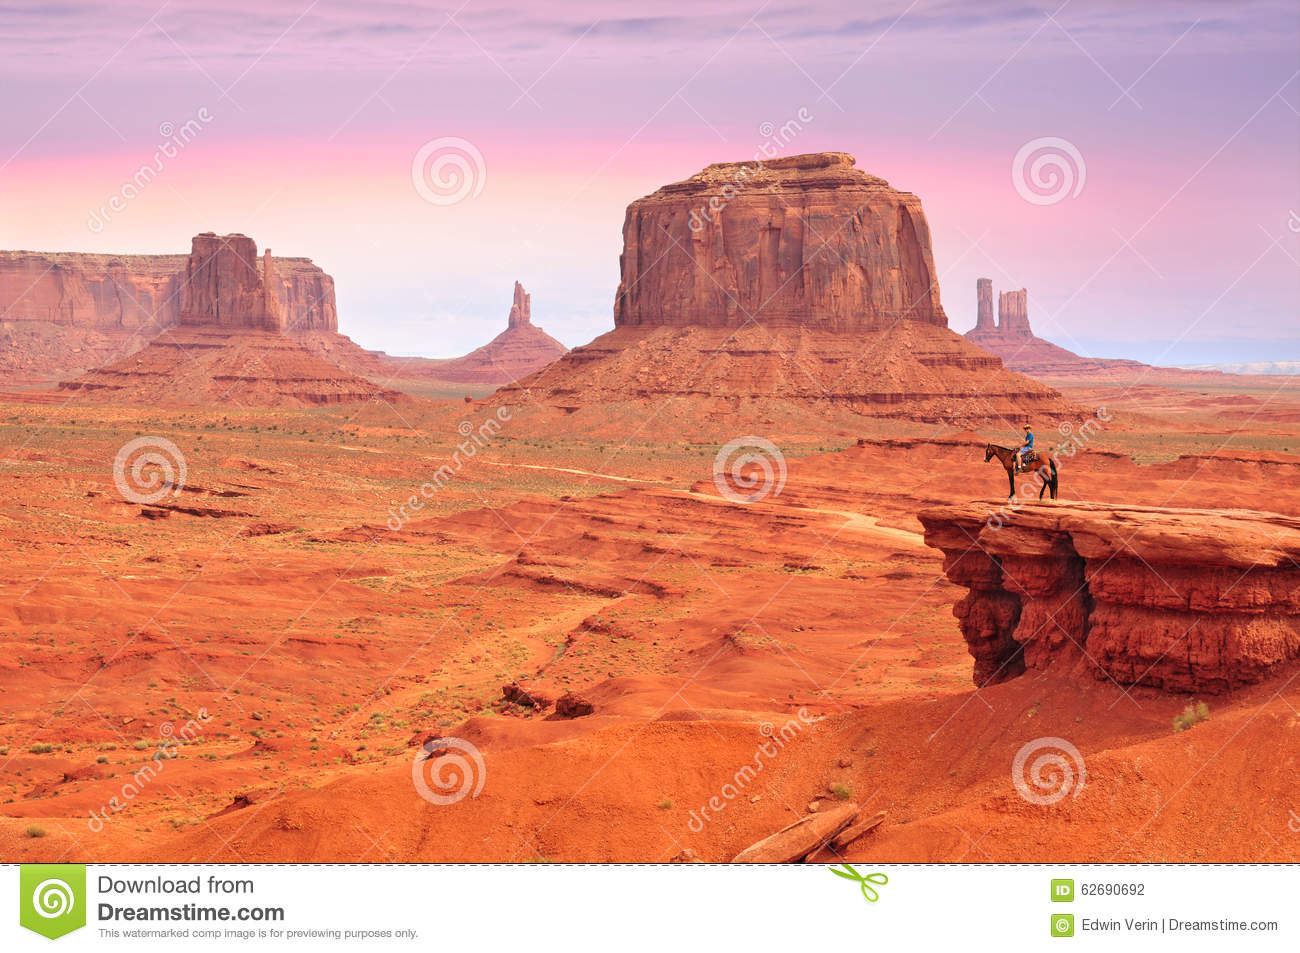 monument valley single men Shop for monument valley art from the world's greatest living artists all monument valley artwork ships within 48 hours and includes a 30-day money-back guarantee.